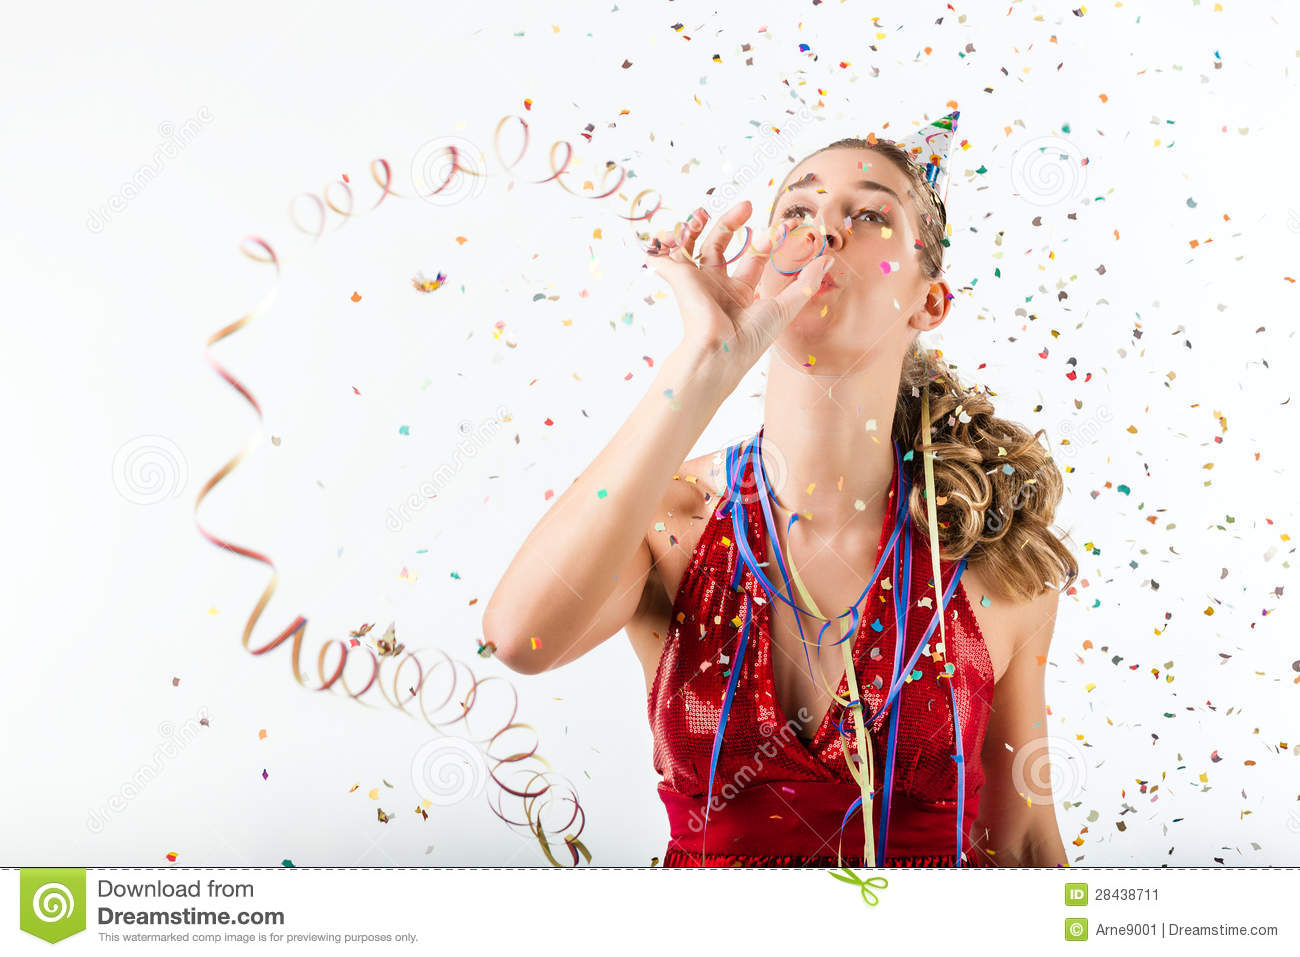 Woman Celebrating Birthday With Streamer And Party Hat